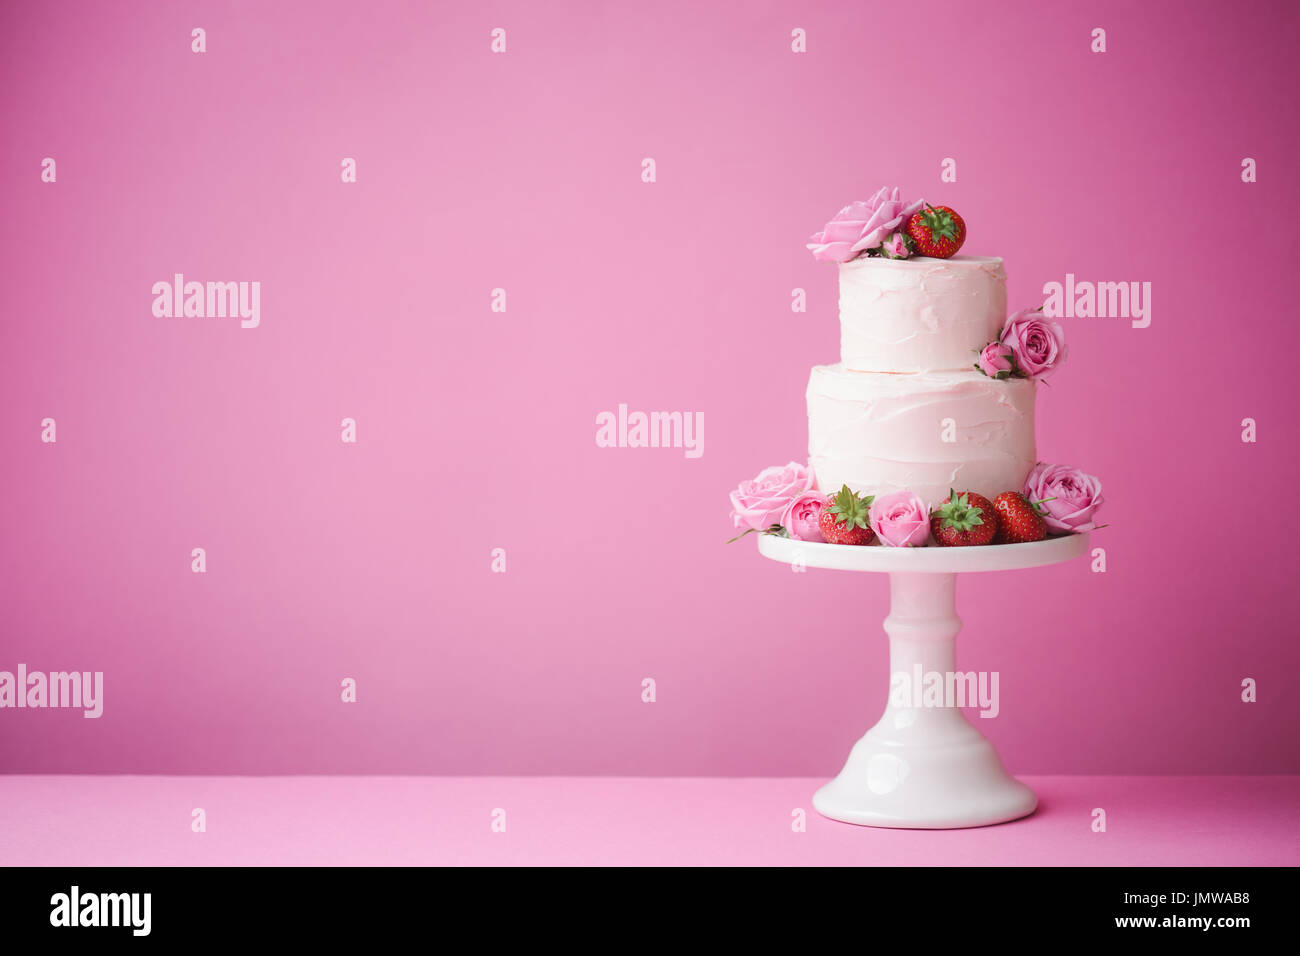 Cake decorated with fresh fruit and flowers Stock Photo: 150533020 ...